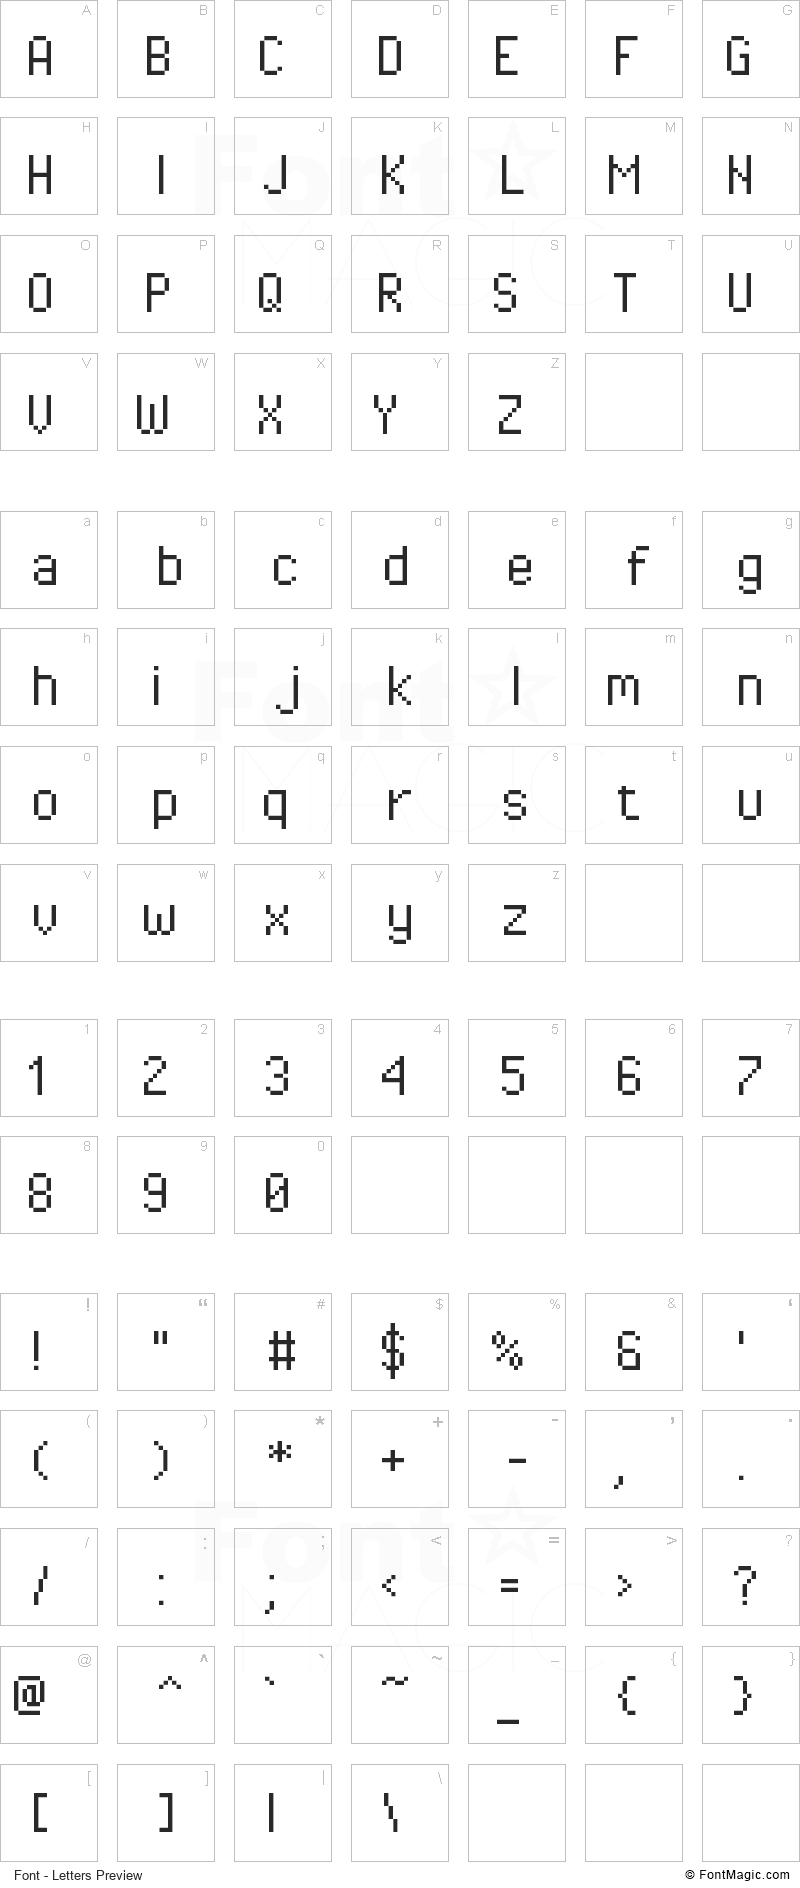 Pixel Operator Font - All Latters Preview Chart